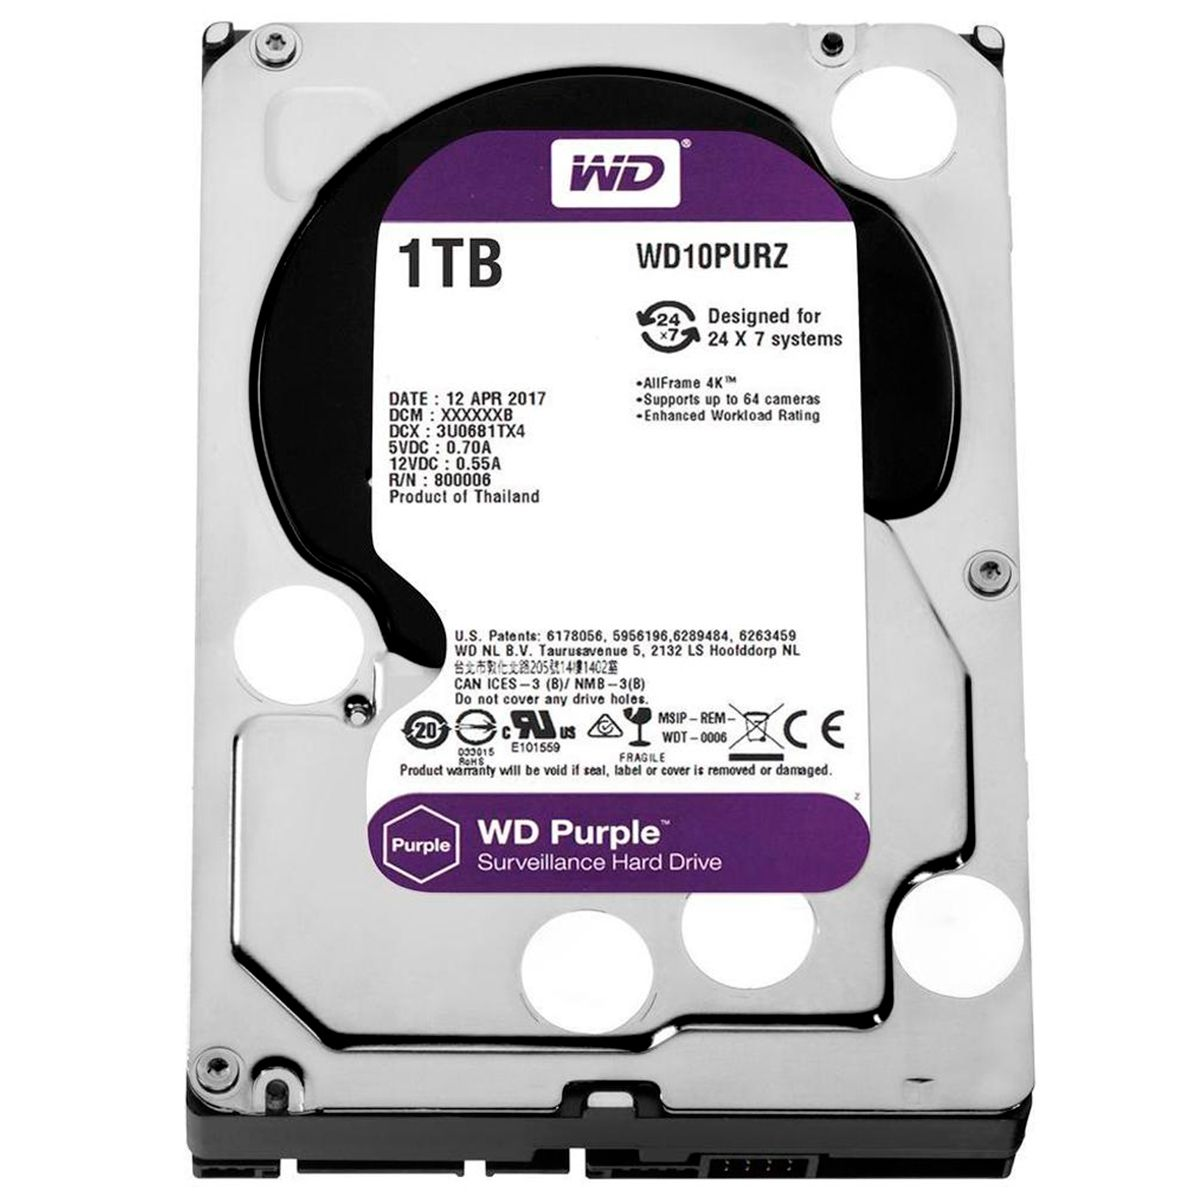 HD Interno WD Purple 1TB Surveillance SATA III 6GB/s 5400 RPM WD10PURZ  - Tudo Forte